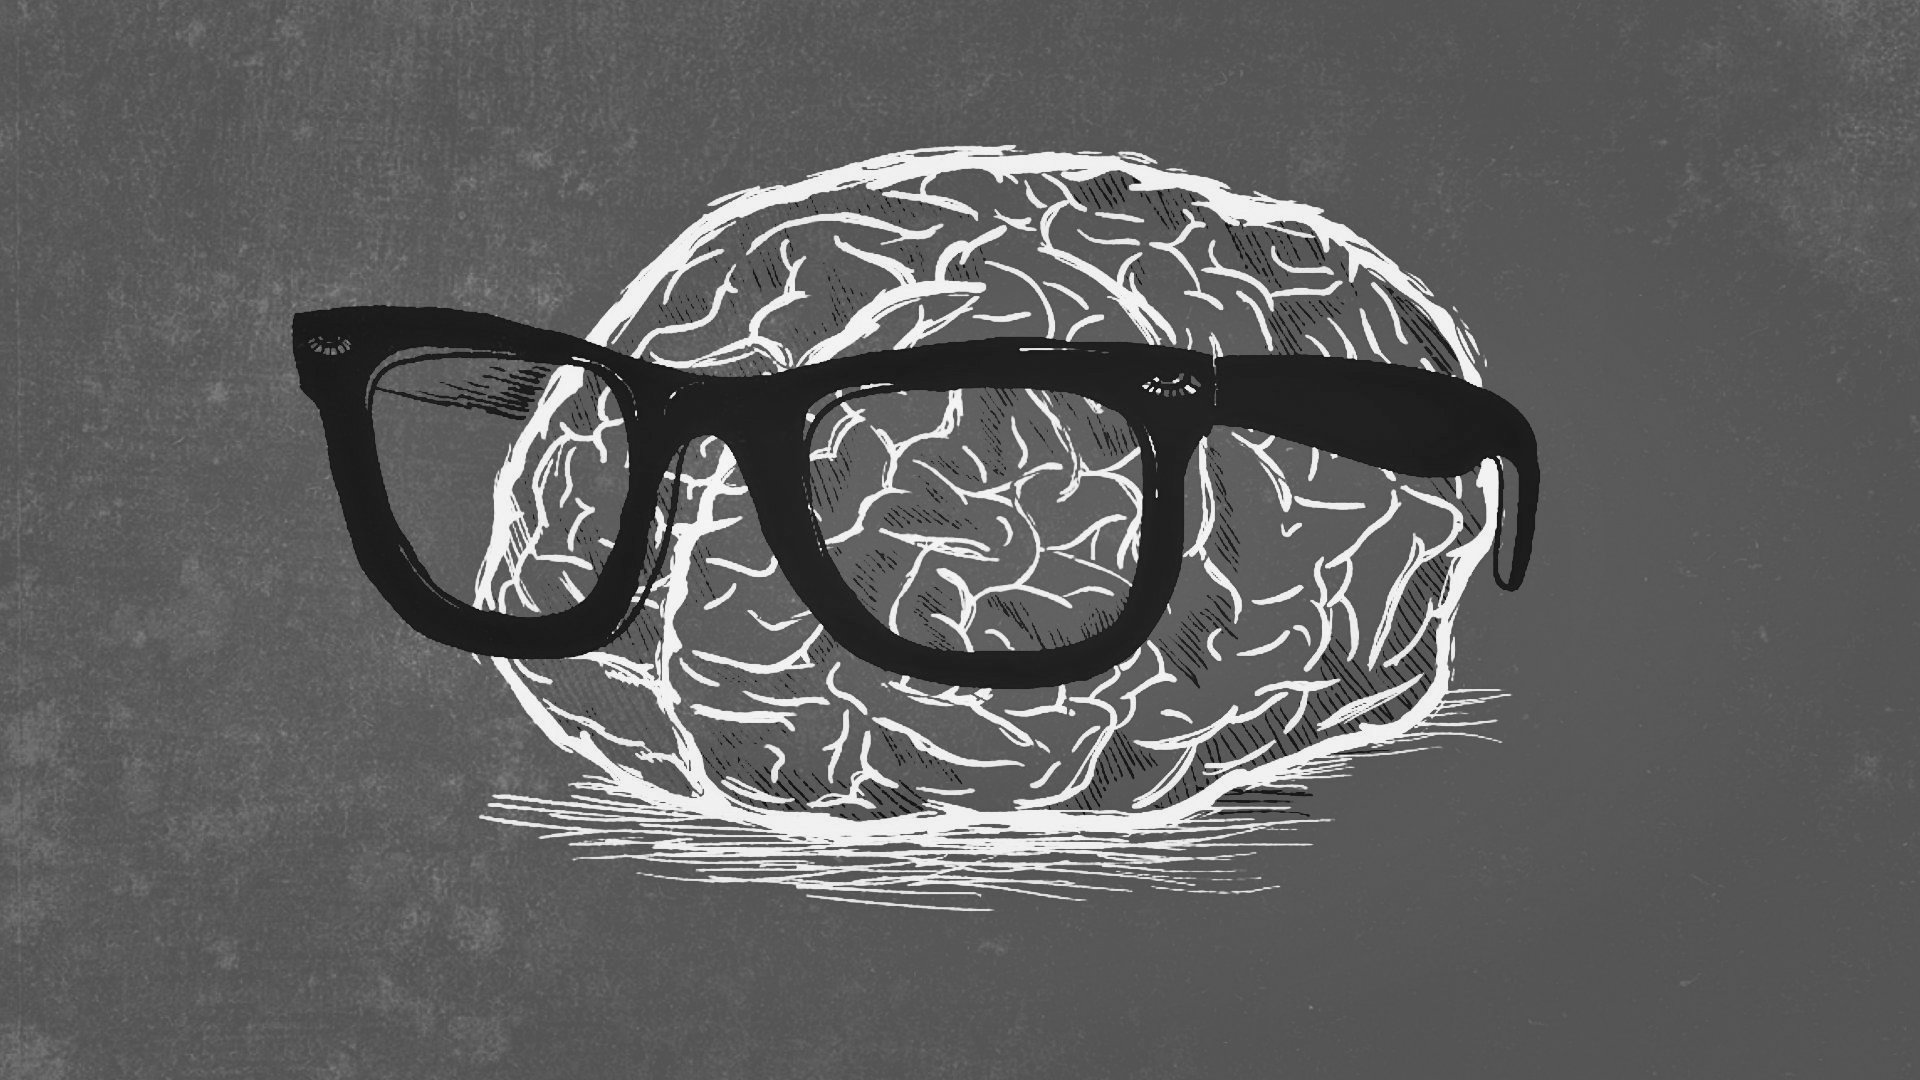 Nerd Brain Gray Color Full HD Wallpaper And Background Image